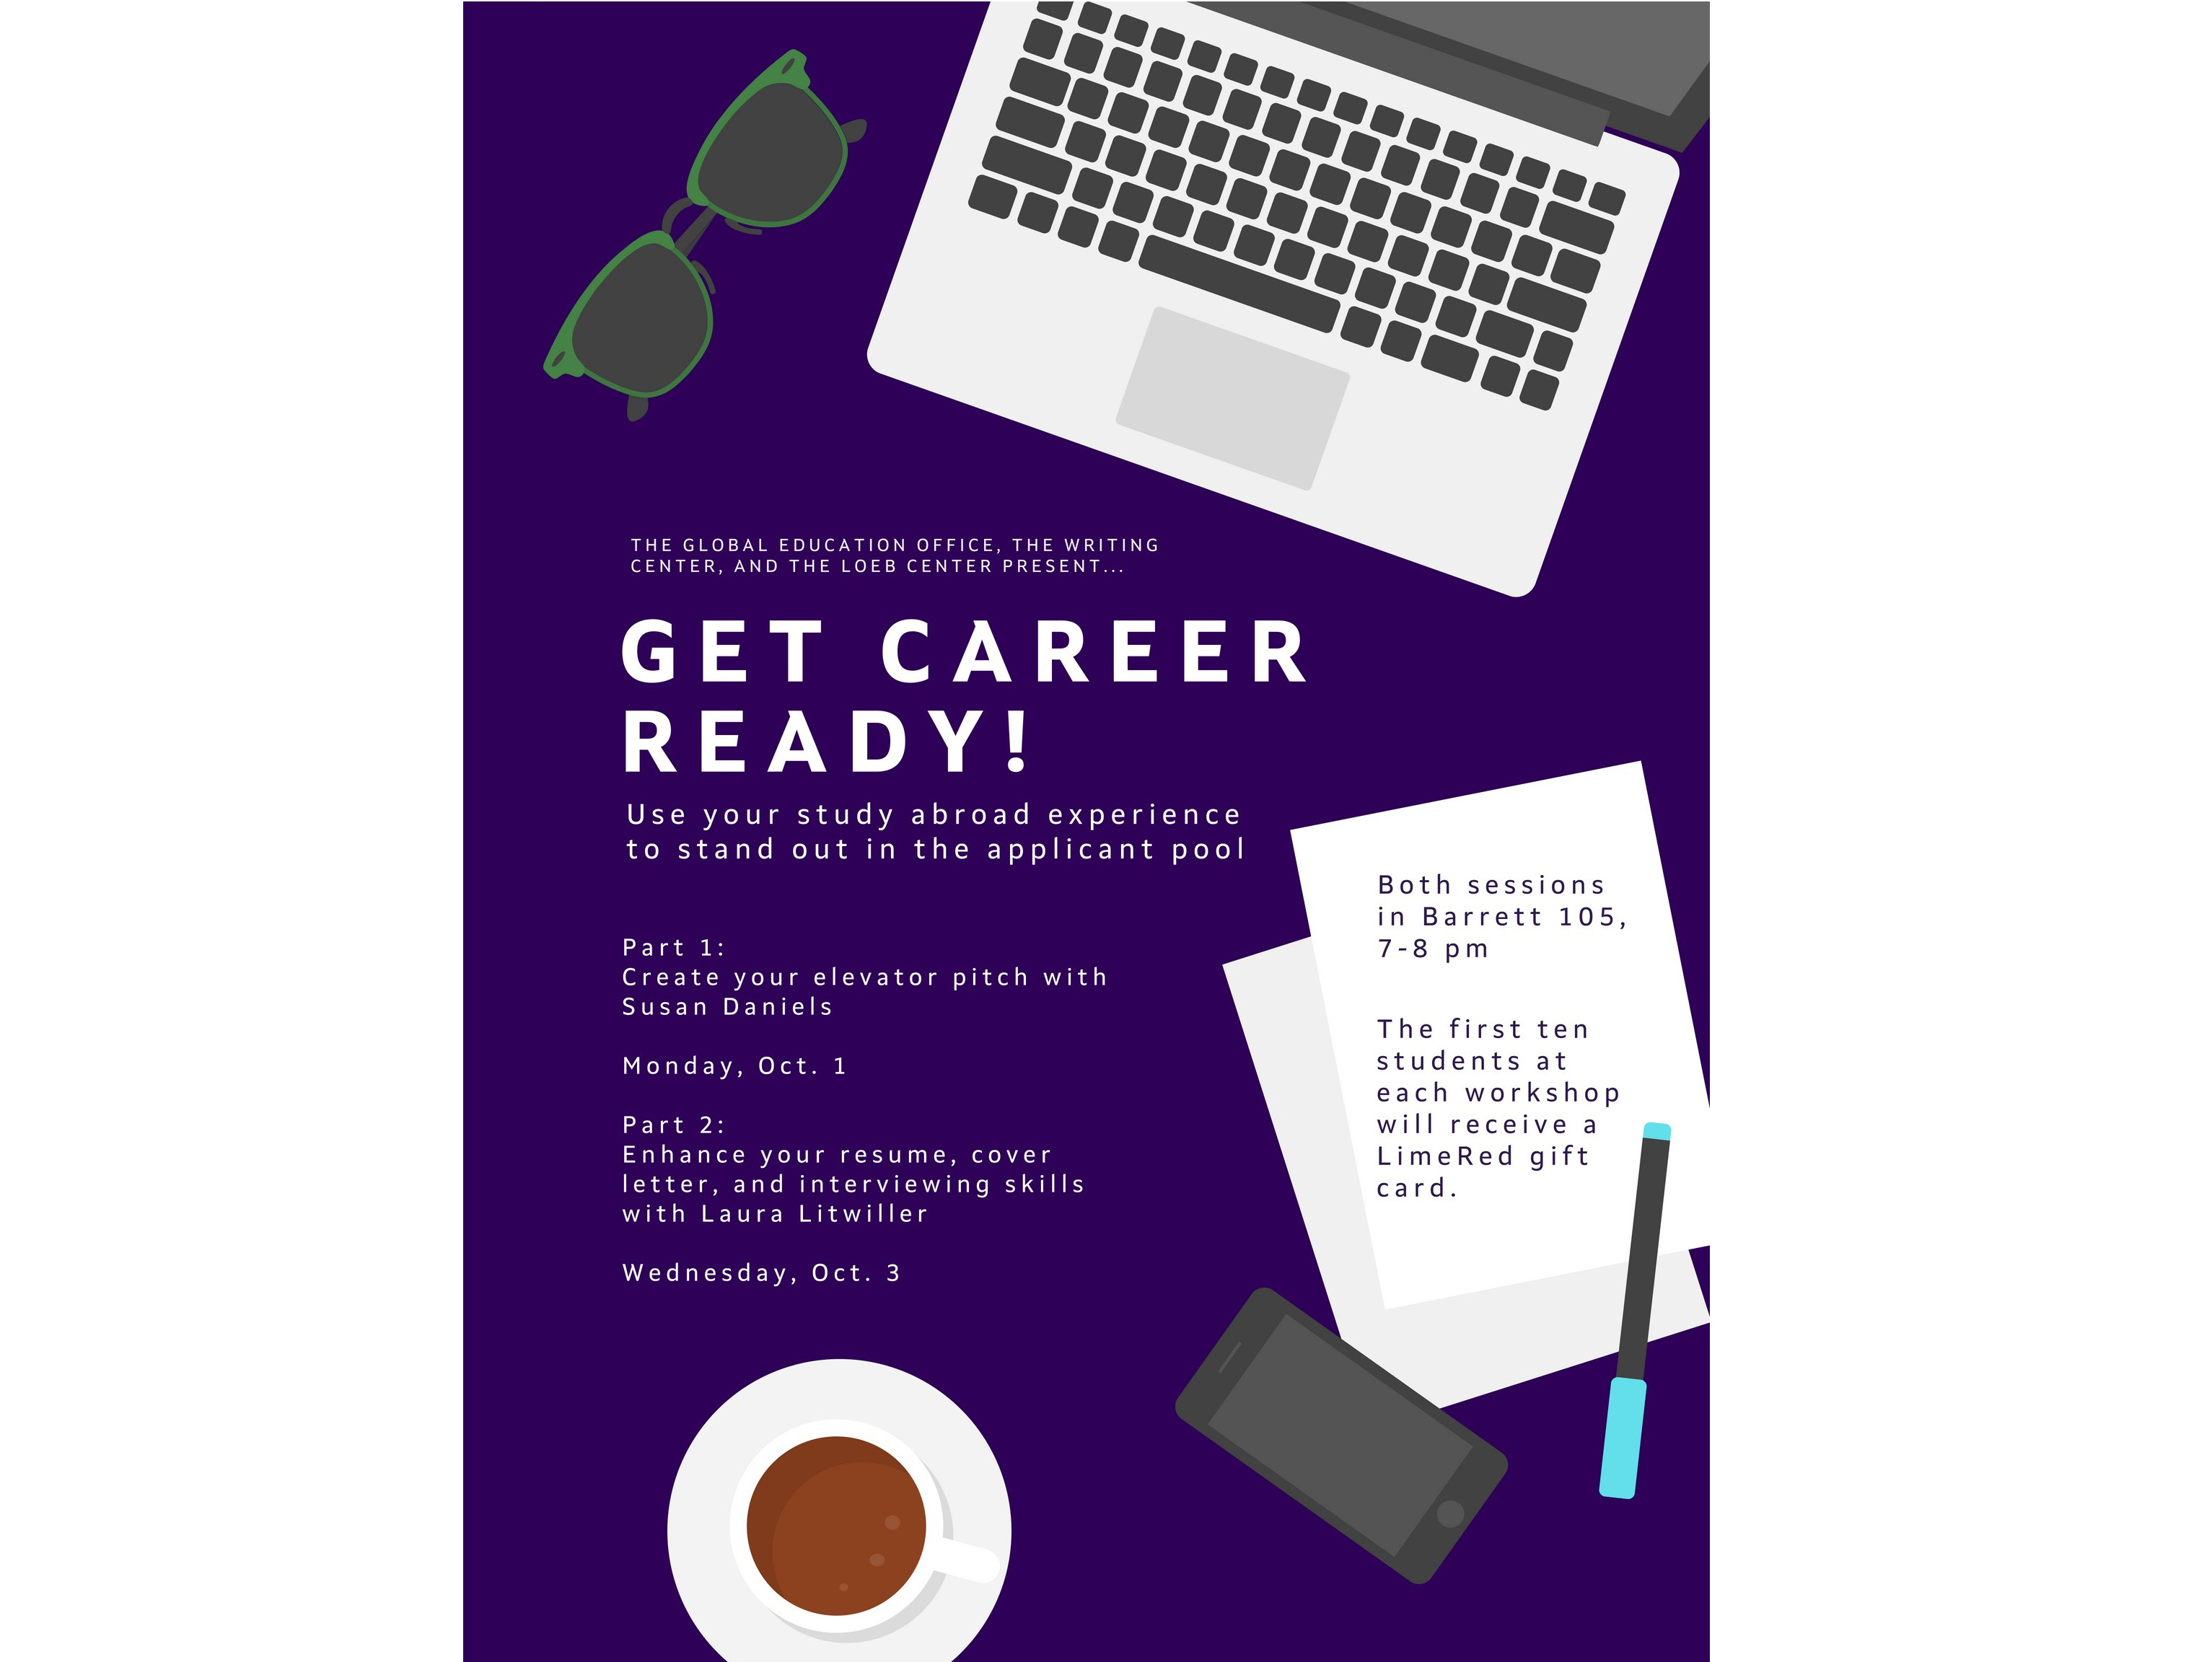 Get Career Ready Use Your Study Abroad Experience To Stand Out In The Applicant Pool